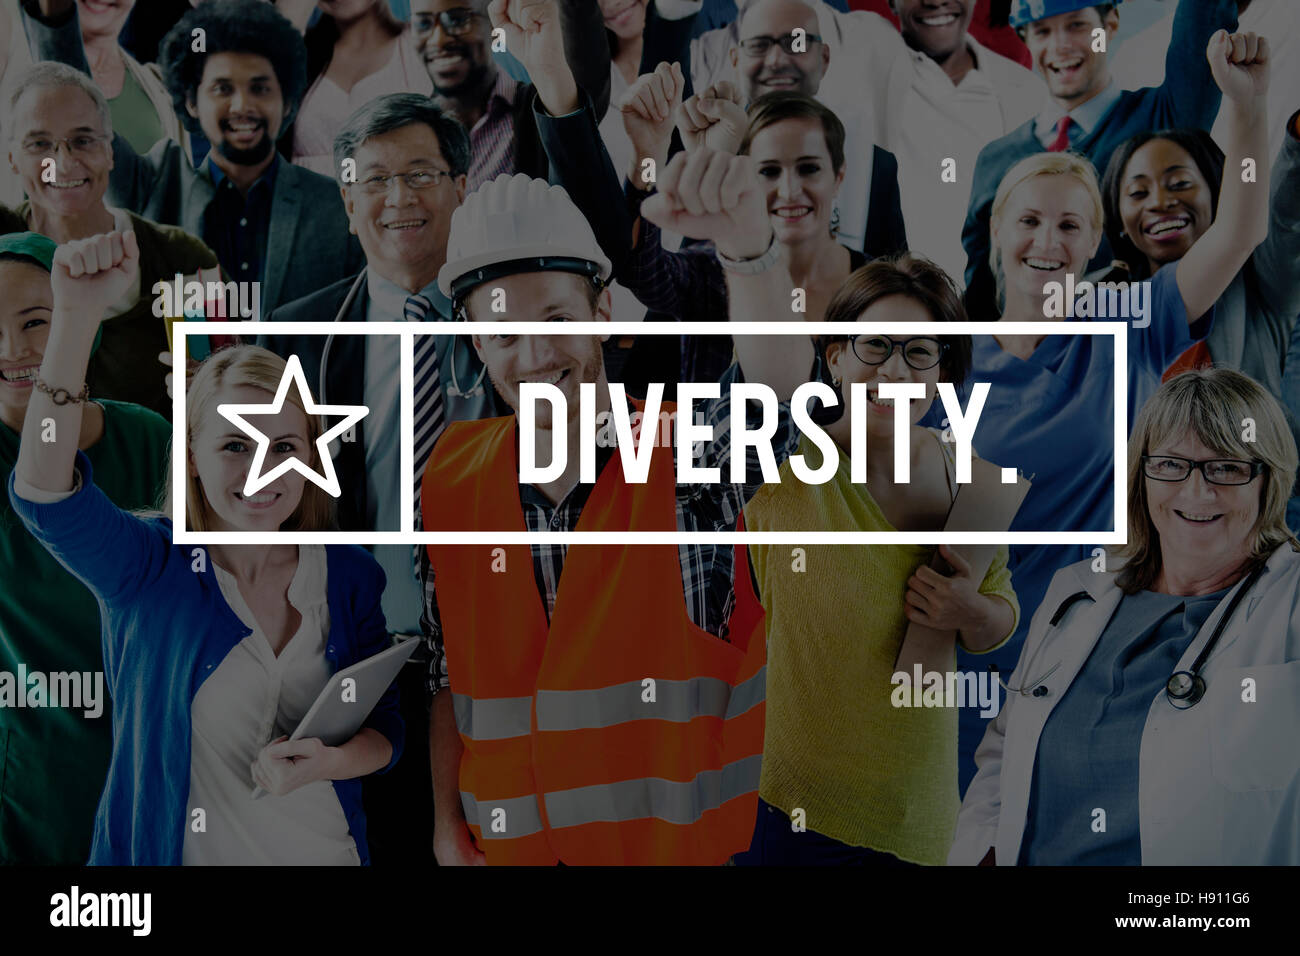 Diversity Society Variation Race Community Concept - Stock Image